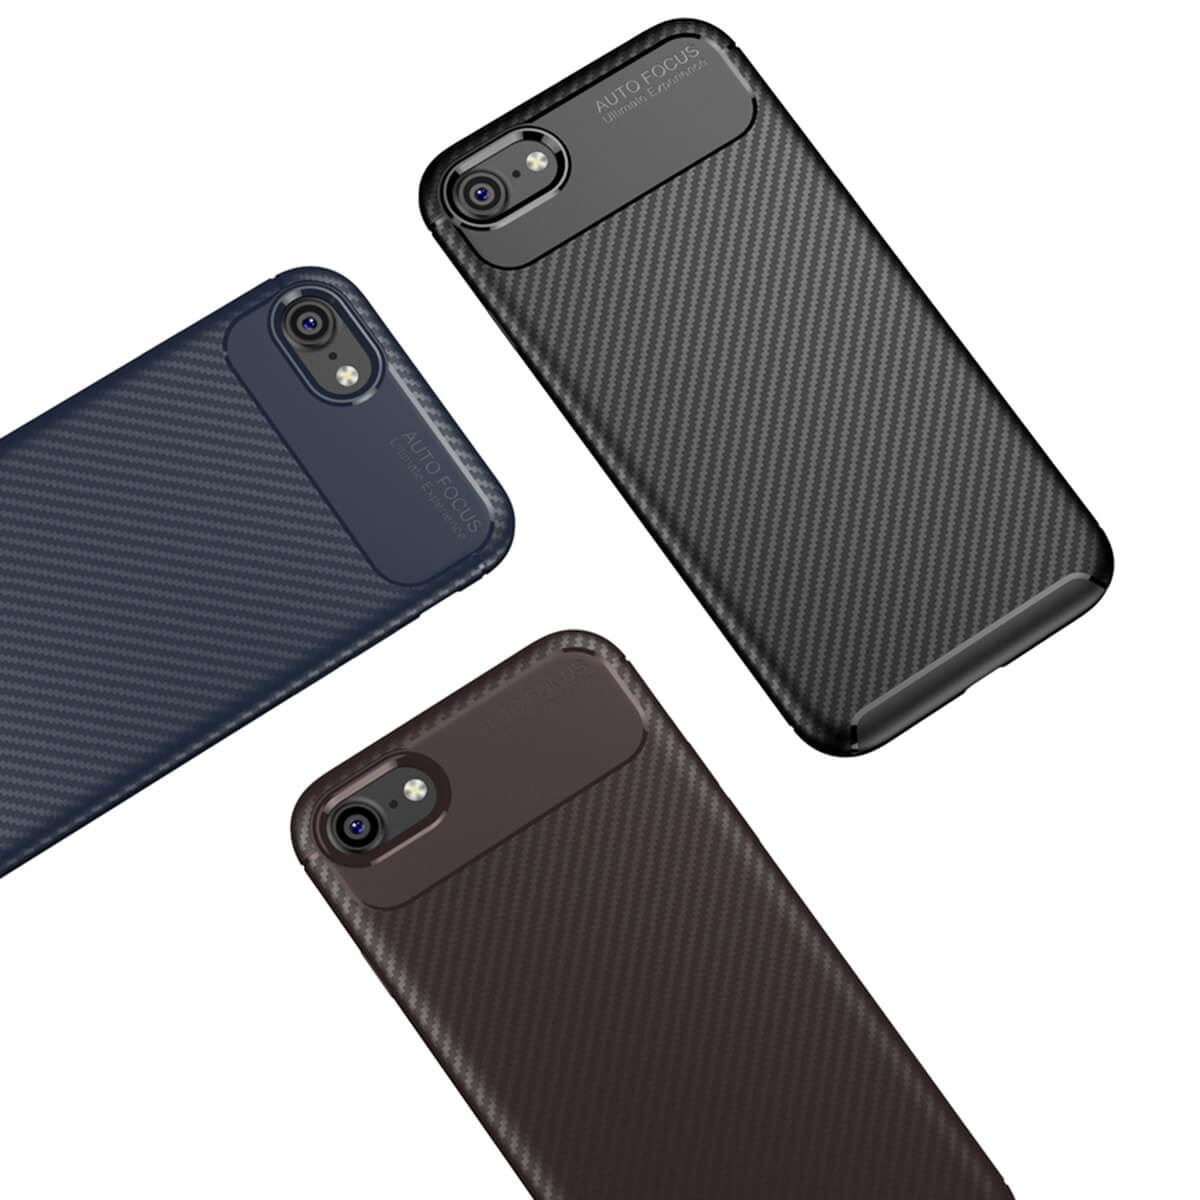 Carbon-Fibre-Soft-Case-For-iPhone-11-X-XR-Max-8-7-6-Plus-Slim-TPU-Silicone-Cover thumbnail 6